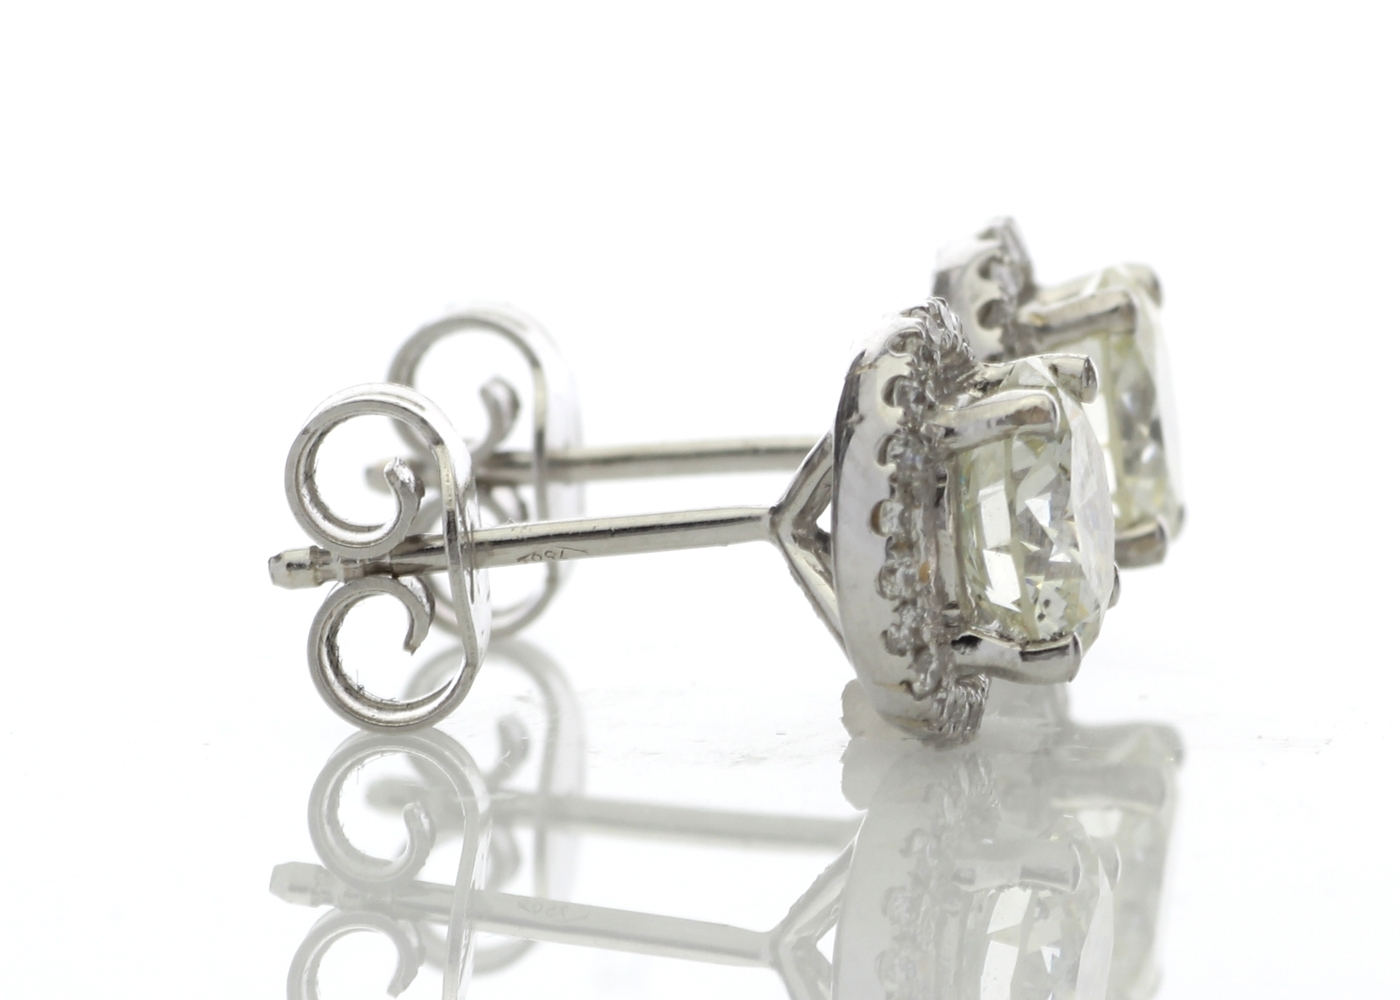 Lot 31 - 18ct White Gold Halo Set Earrings 2.26 Carats